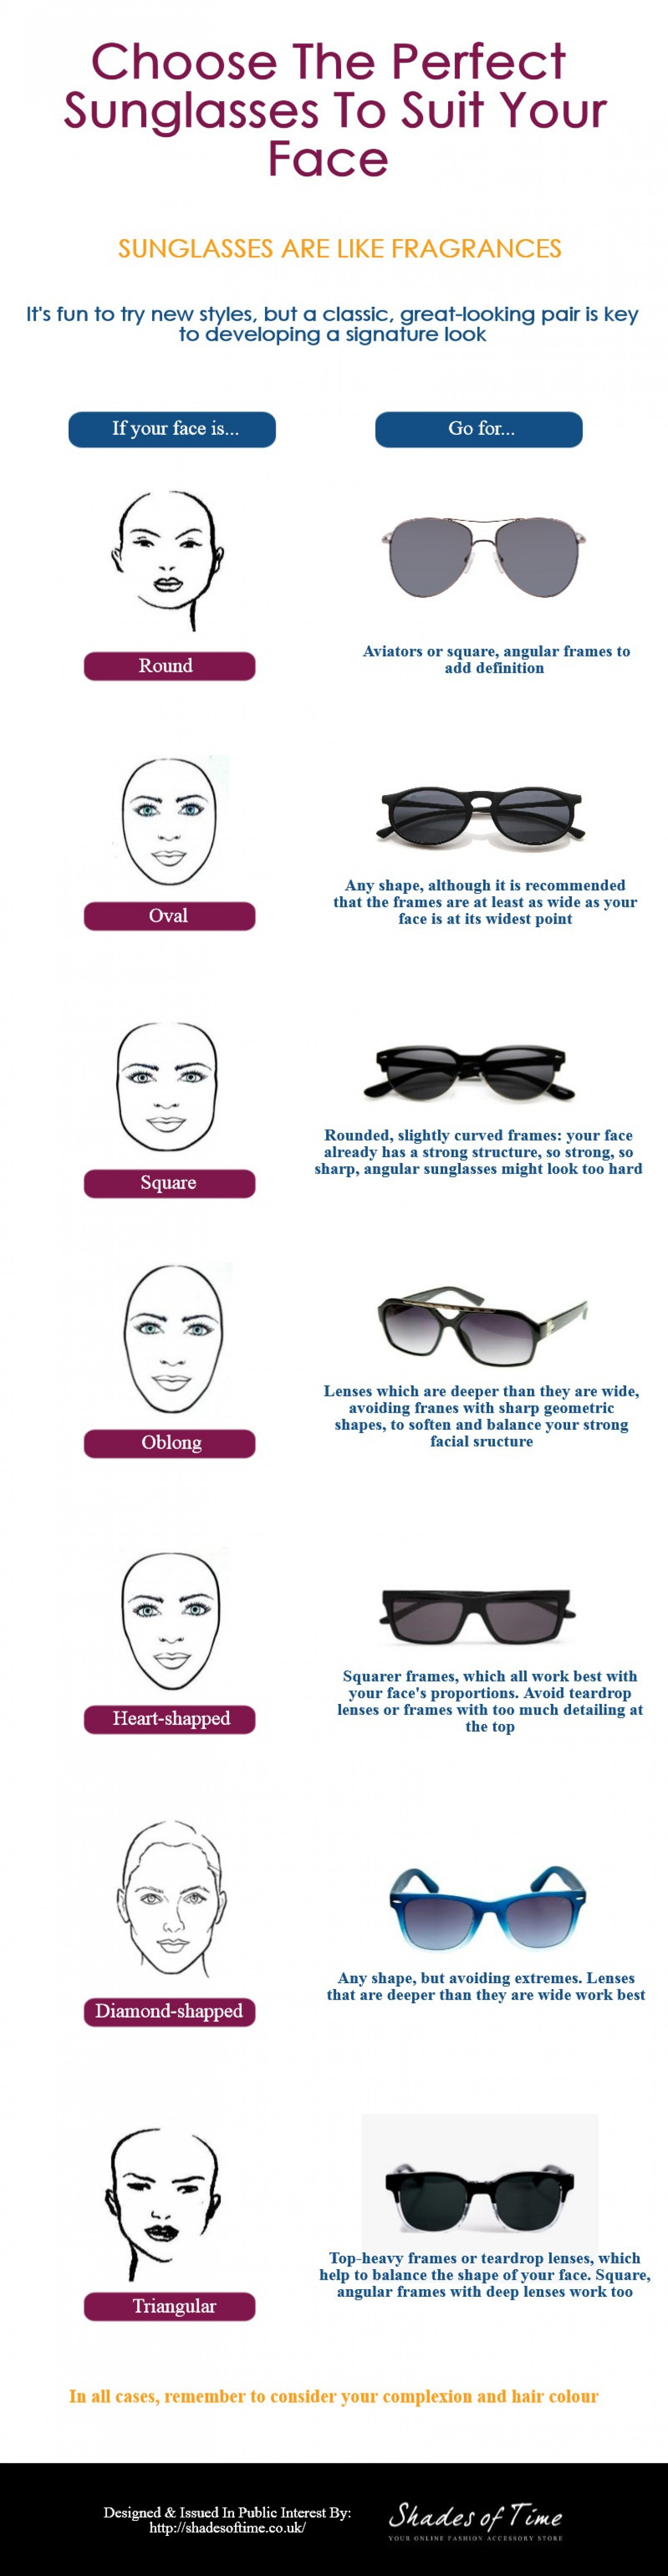 Choose The Perfect  Sunglass To Suit Your Face Infographic